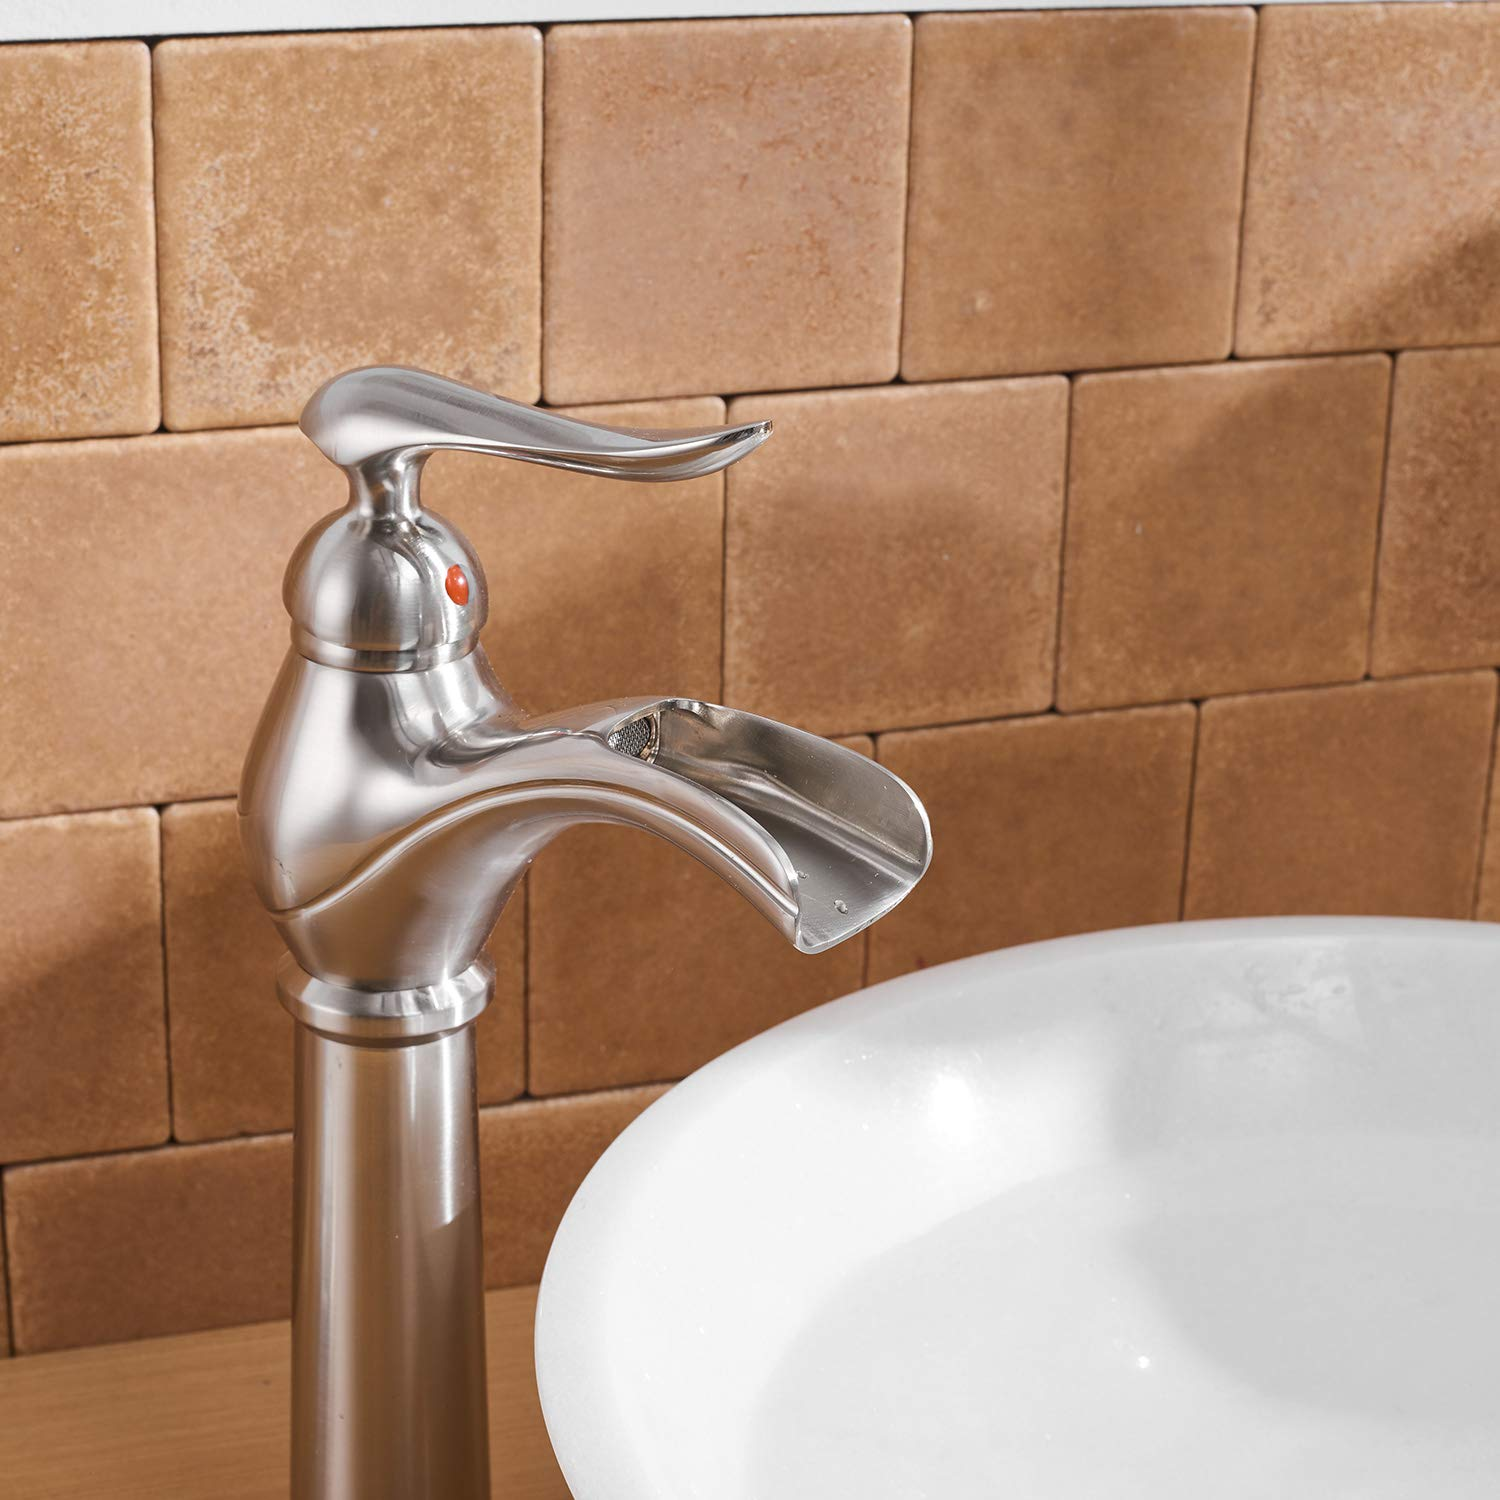 BWE A-96559 Single Handle Bathroom Faucet (Tall/Short)